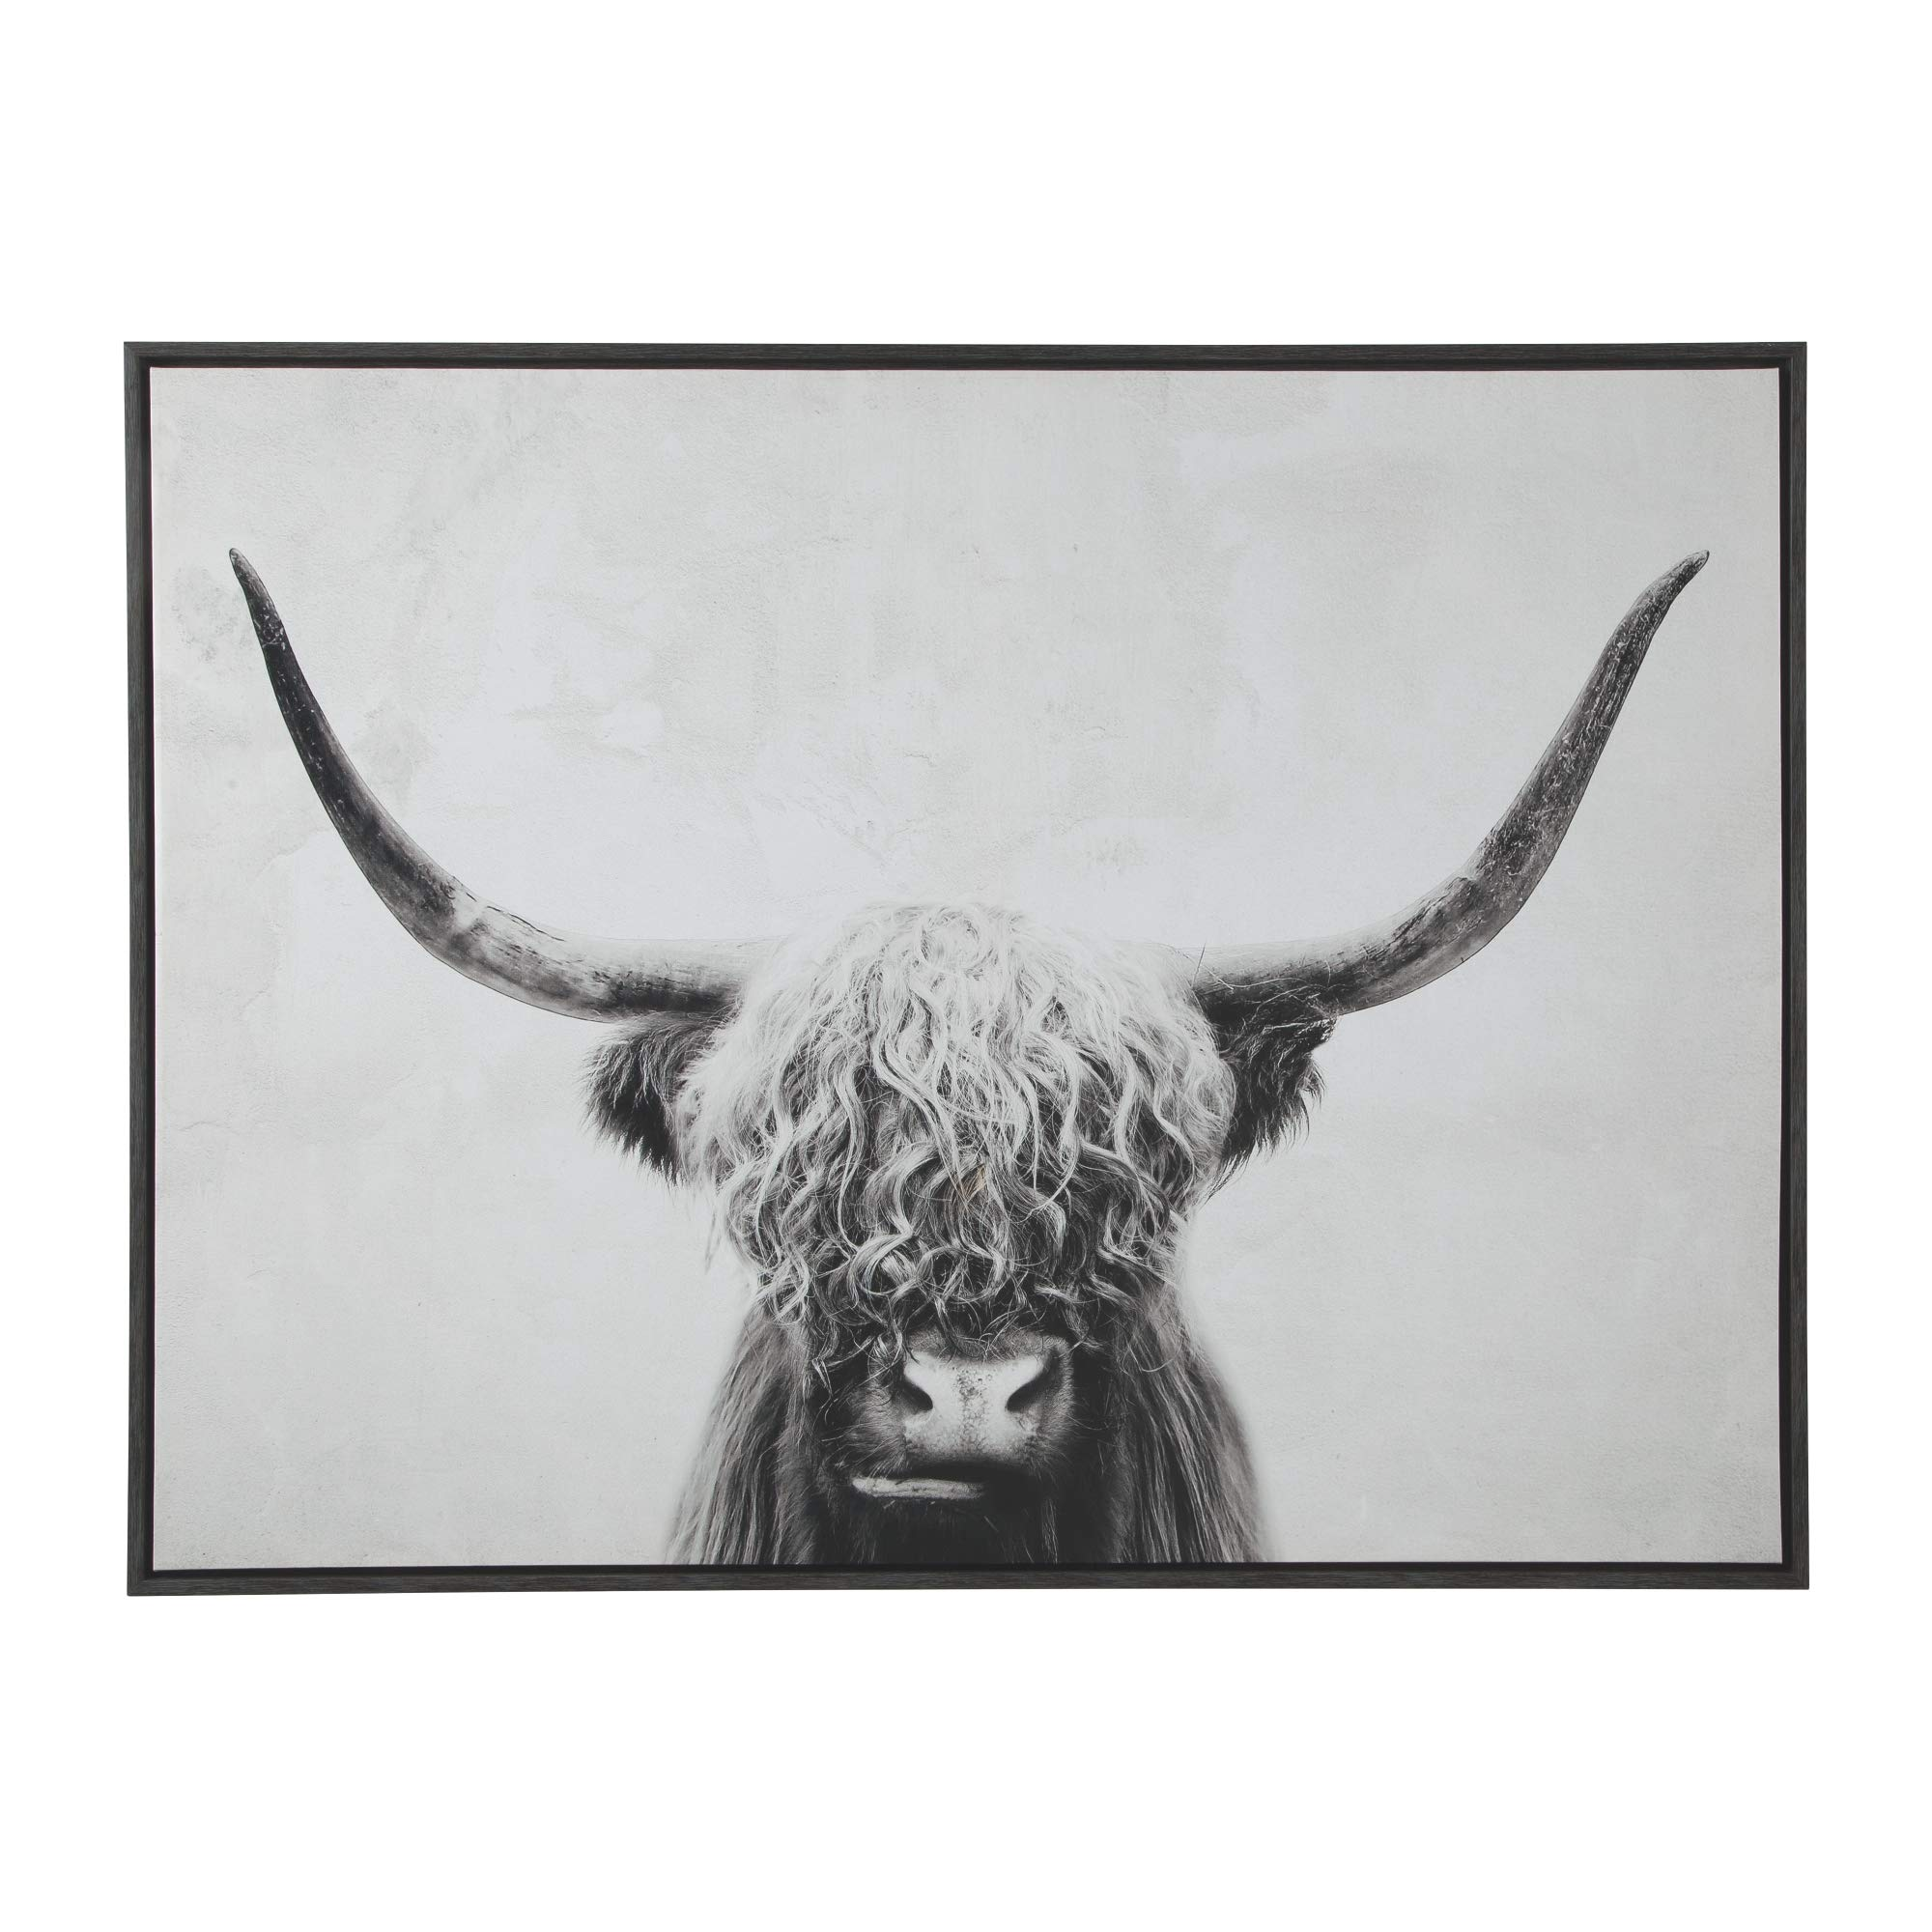 Ashley Furniture Signature Design - Pancho Highland Cow Wall Art - Casual - Black/White by Signature Design by Ashley